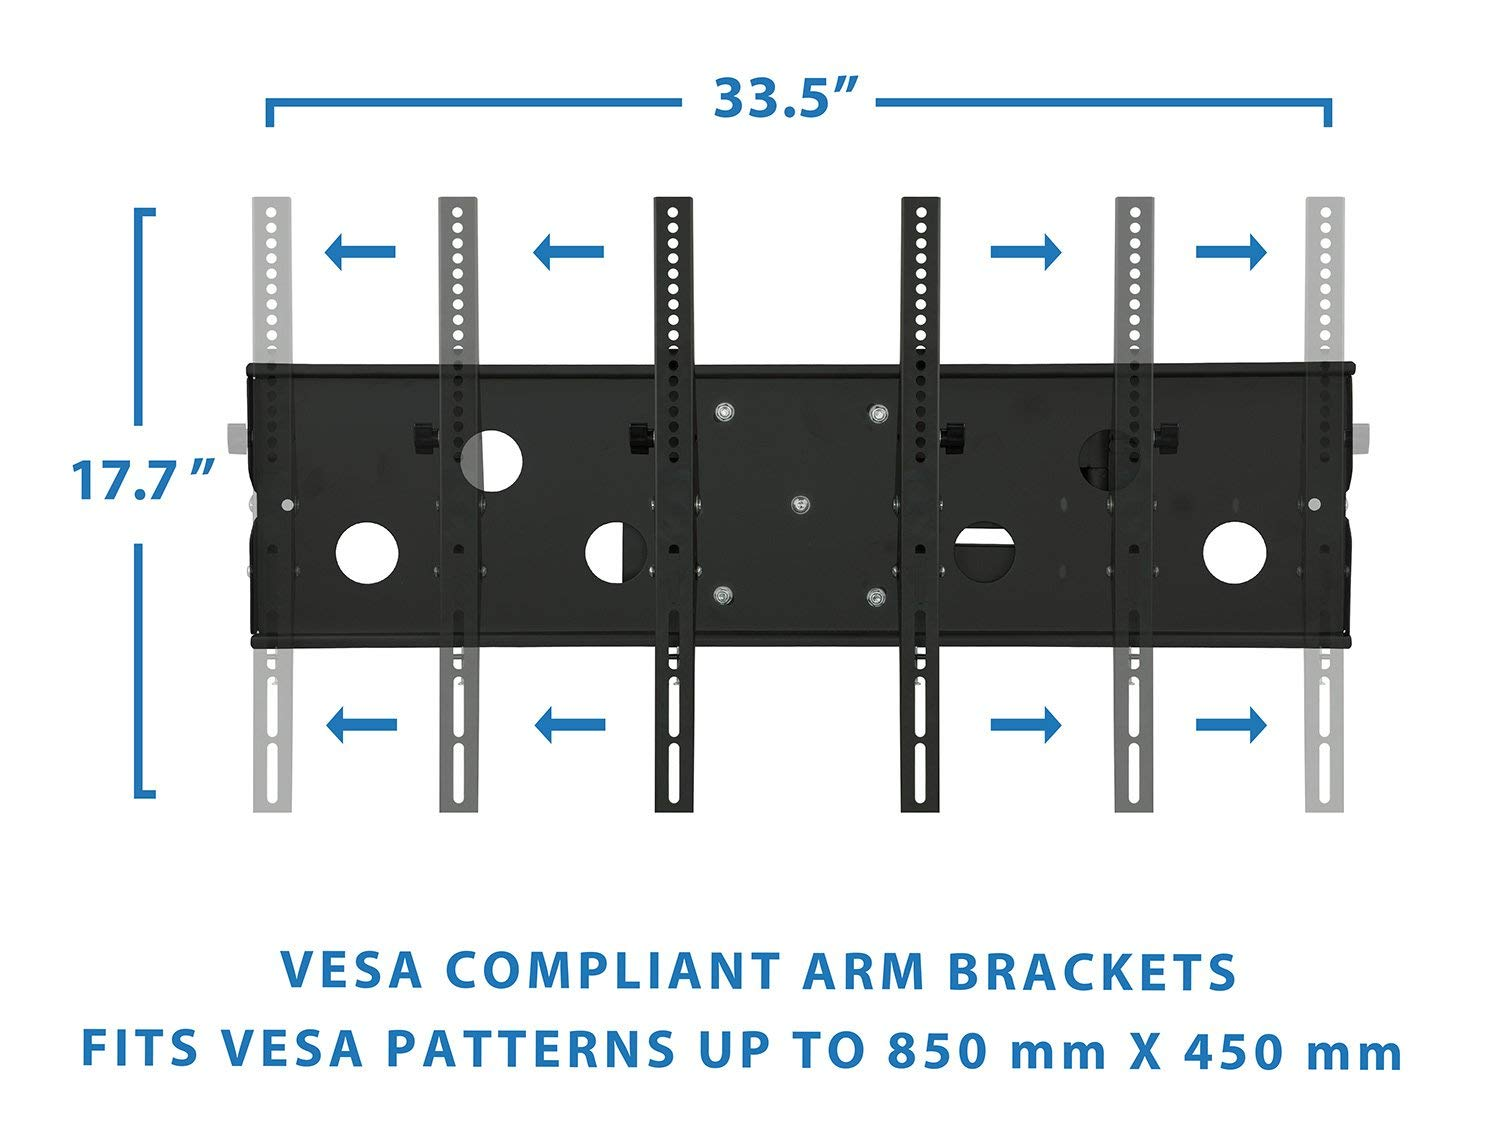 Mount-It! Long Arm TV Wall Mount With 26 Inch Extension, Swing Out Full Motion Design for Corner Installation, Fits 40 50, 55, 60, 65, 70 Inch Flat Screen TVs, 220 Pound Capacity by Everstone (Image #7)